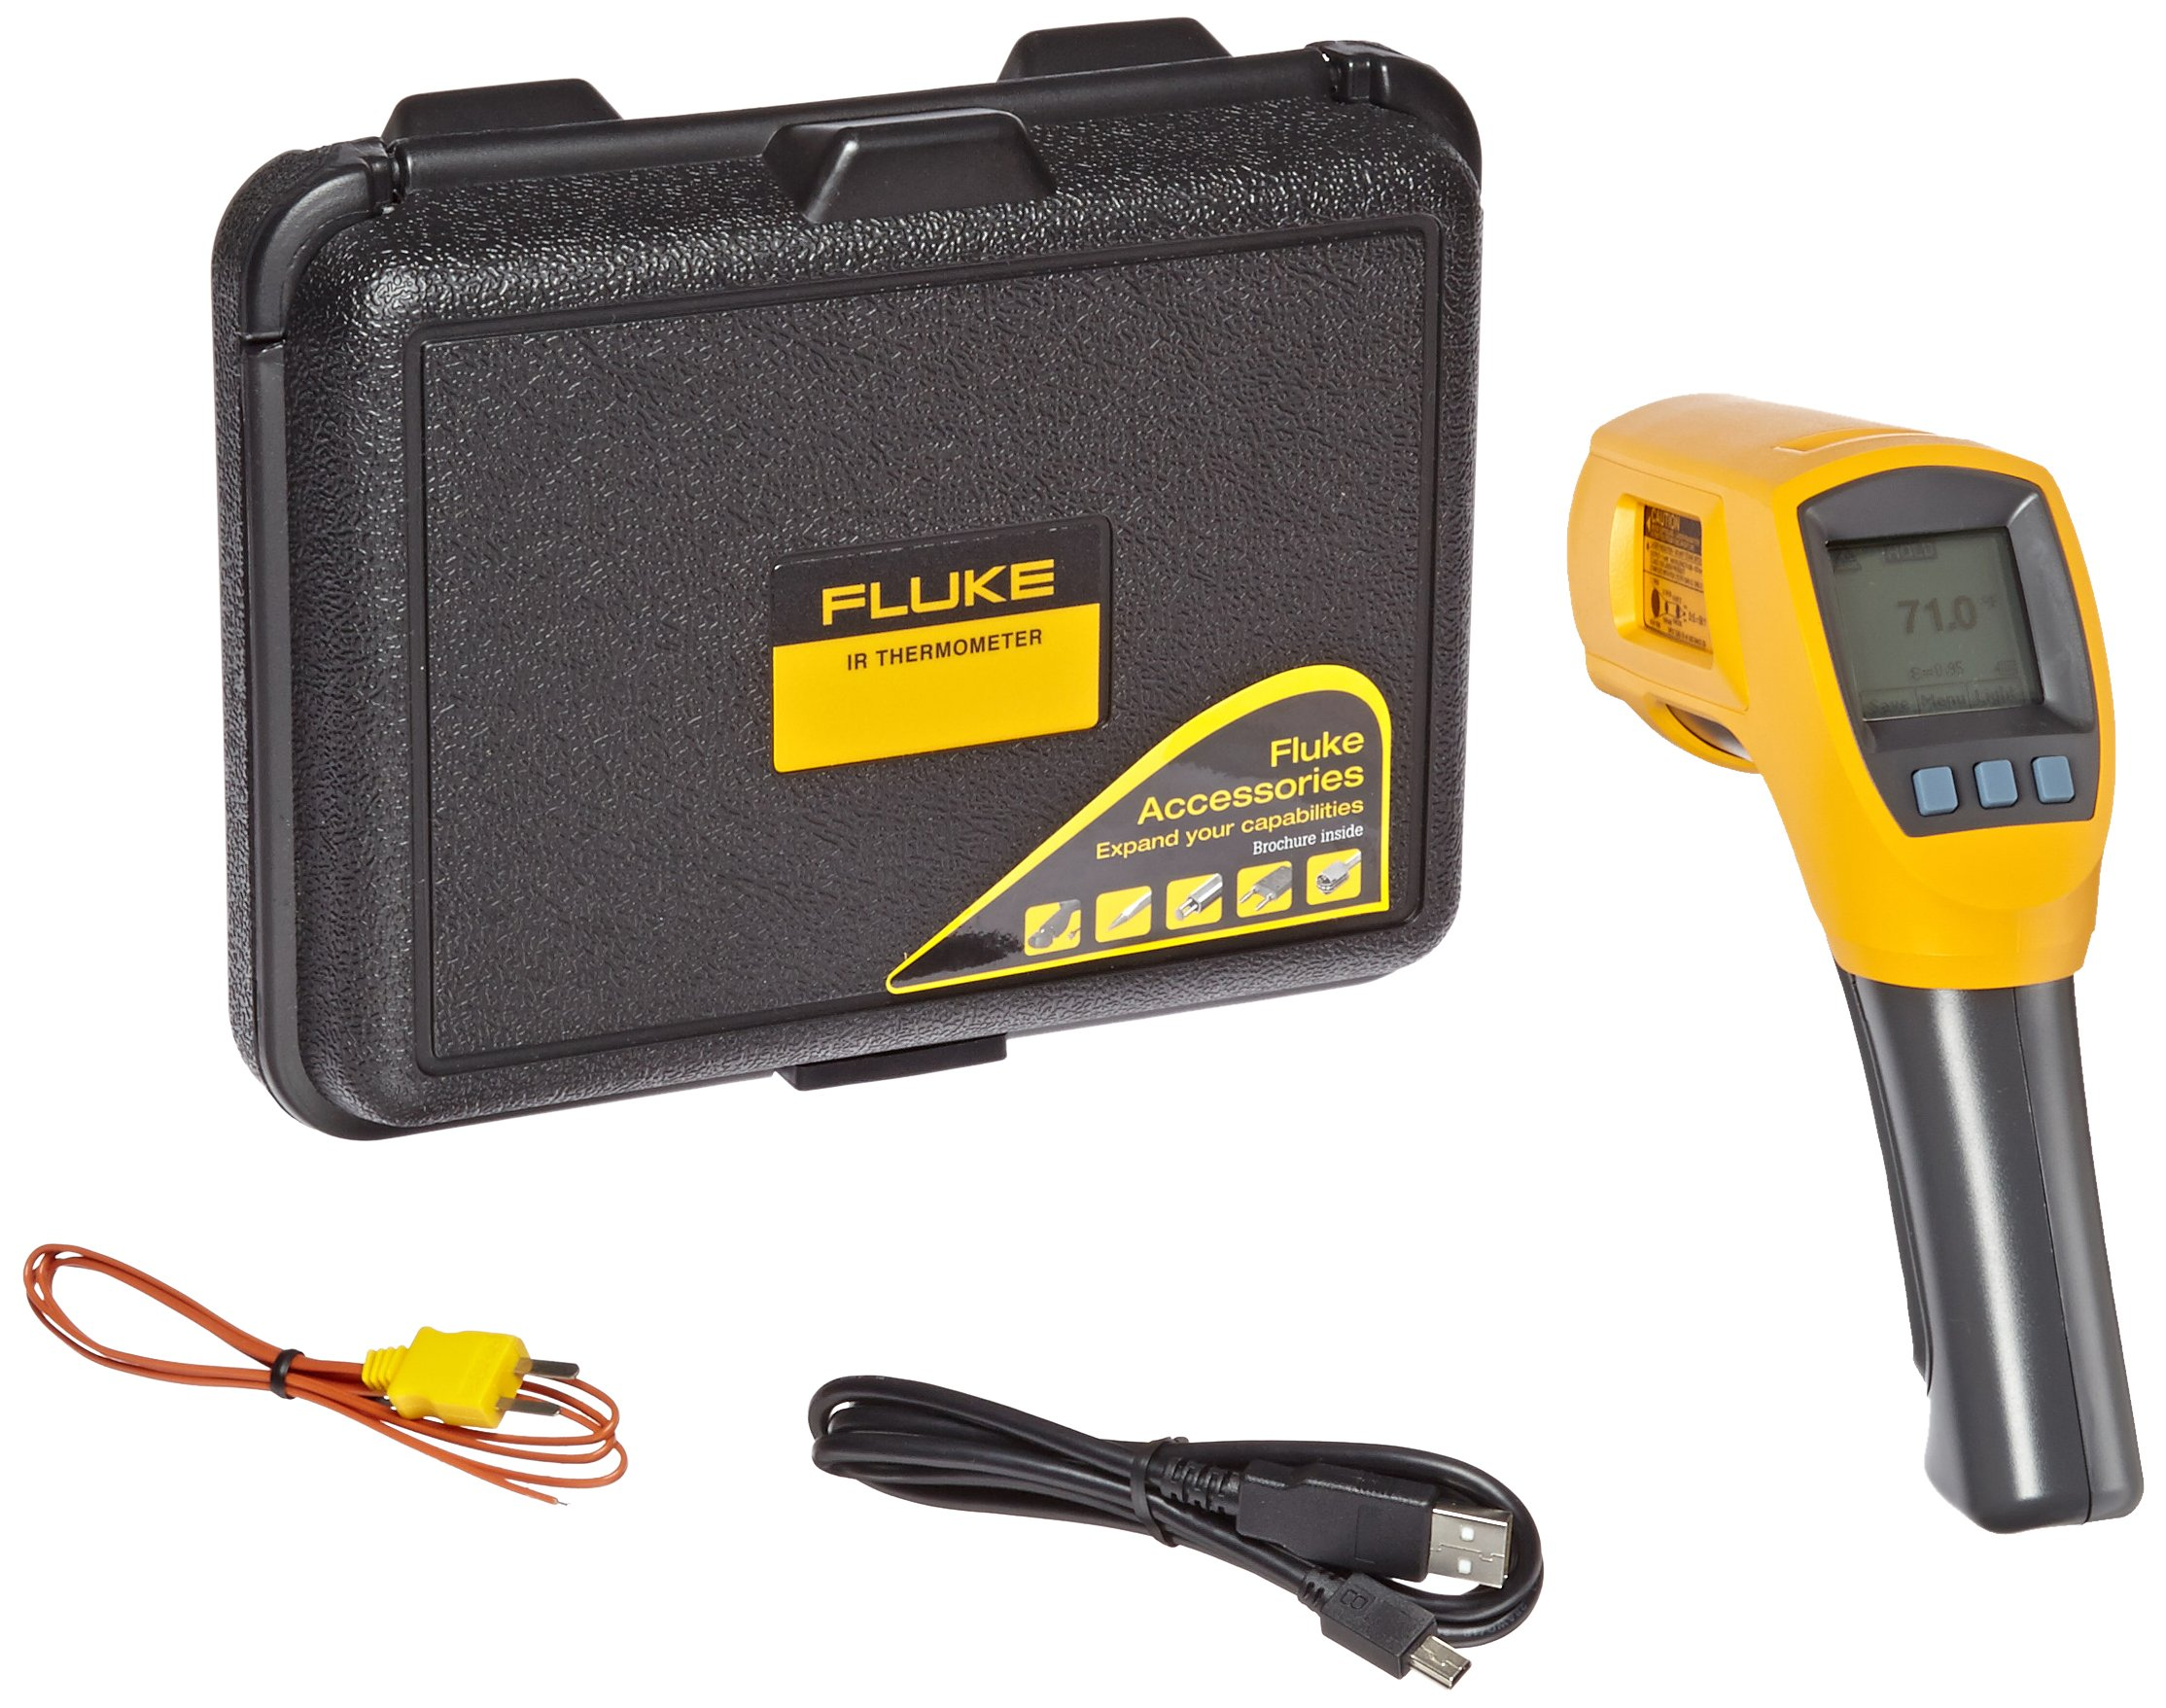 Fluke 568 Infrared Thermometer, 2AA/LR6 Battery, -40 to +1472 Degree F Range with a NIST-Traceable Calibration Certificate with Data